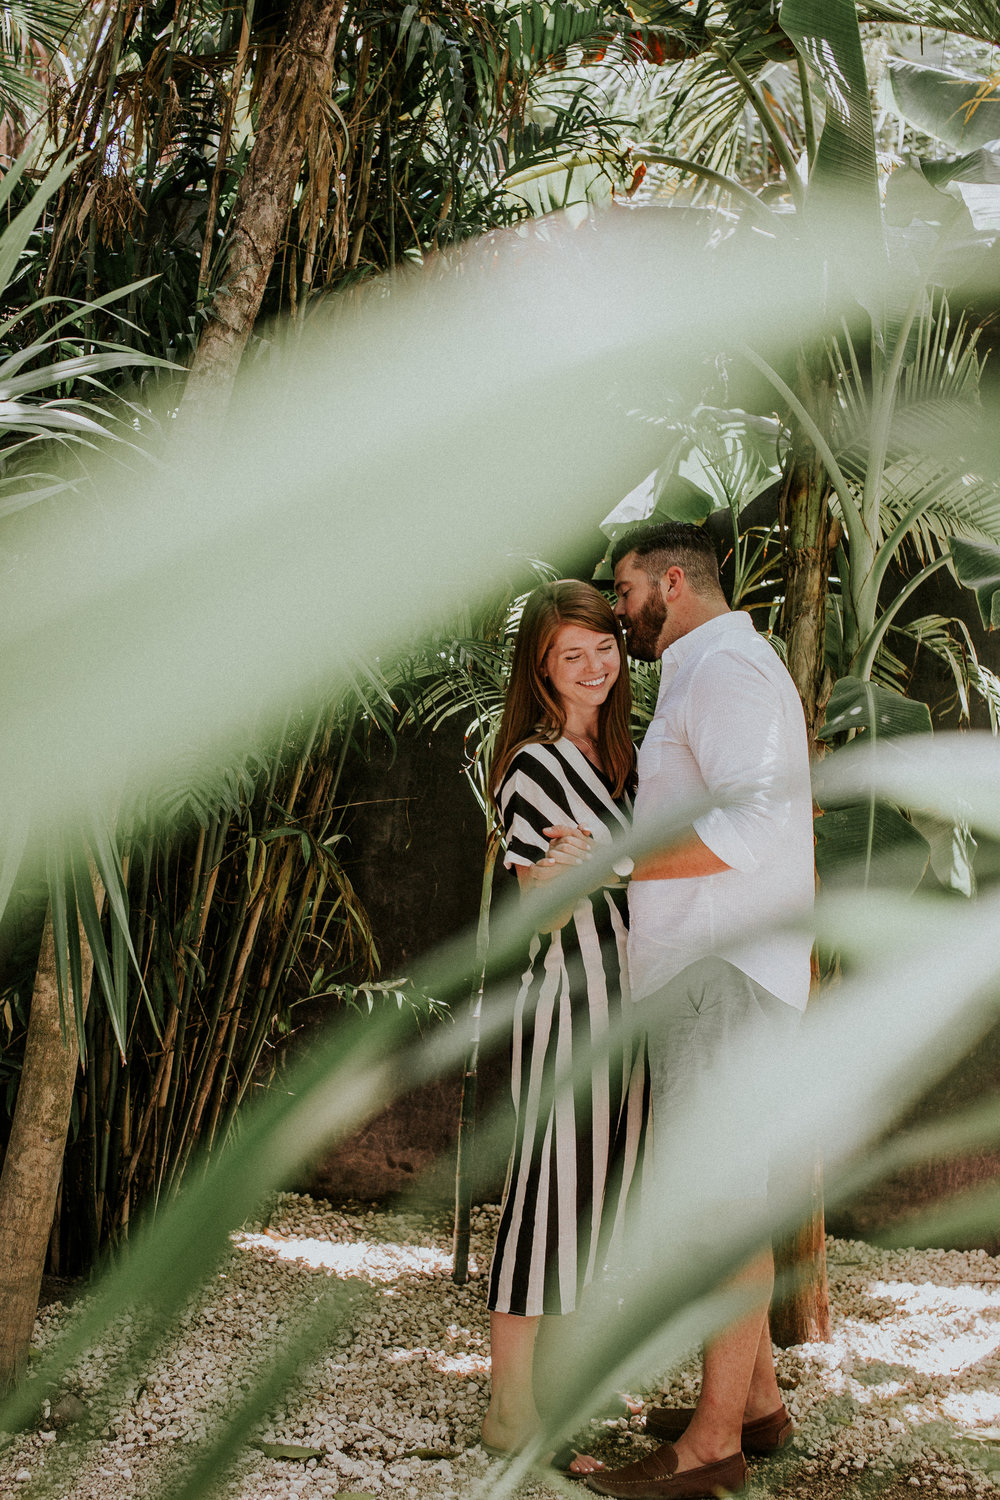 tulum wedding photographer, quintana roo, mexico, tulum engagement shoot, beatatum photography, travel blogger, ellespann, lments of style